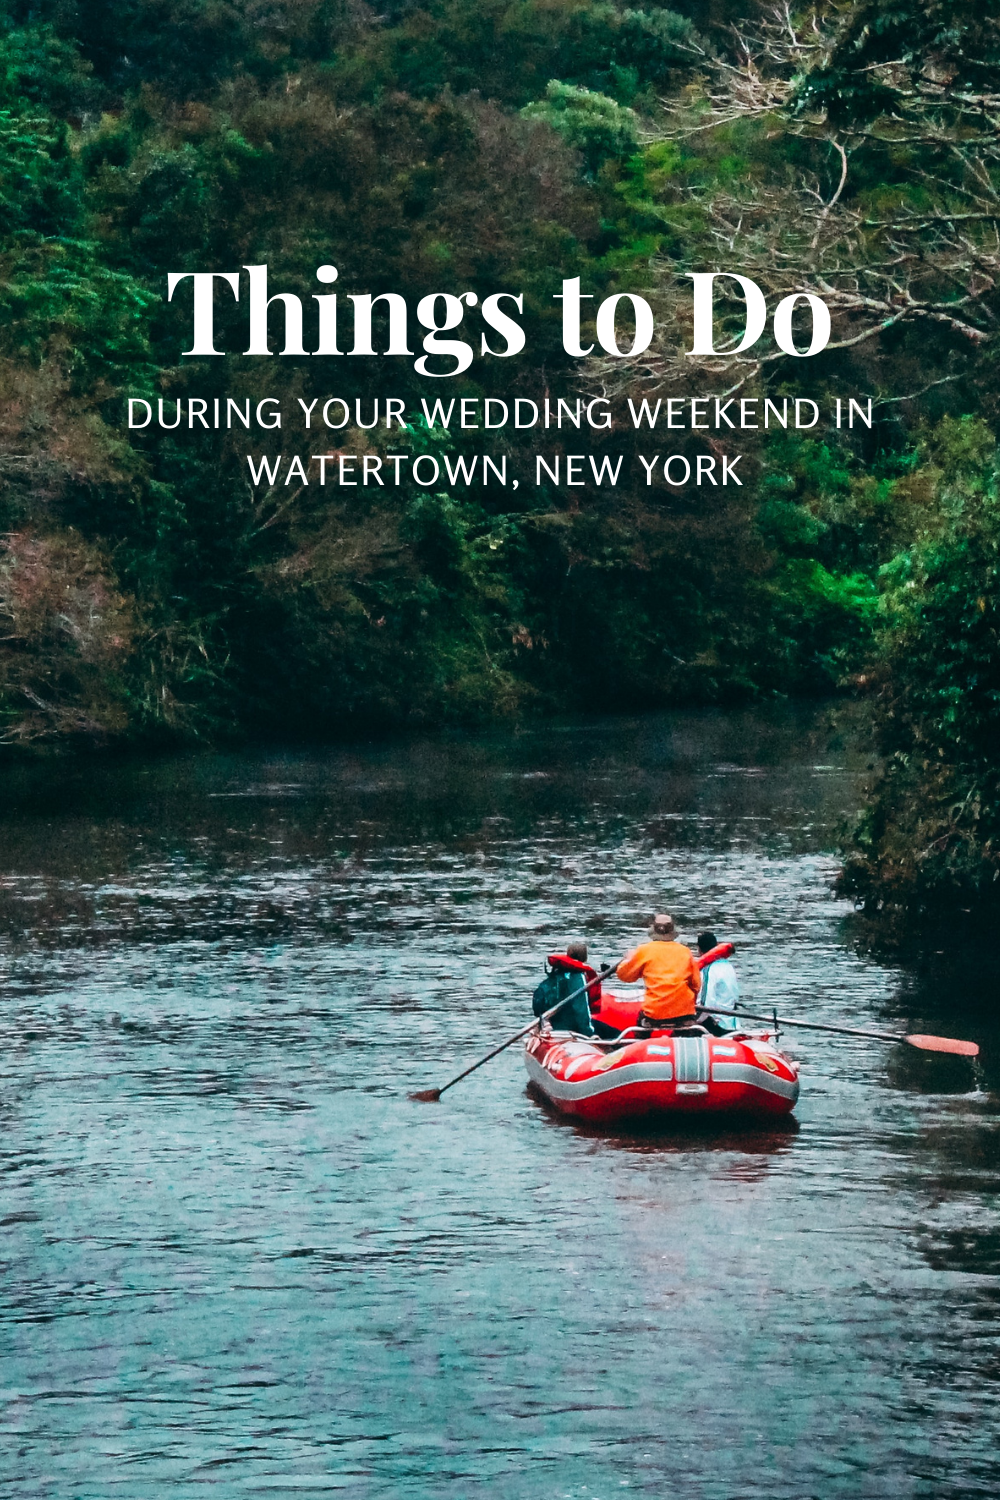 Things to Do in Watertown, New York